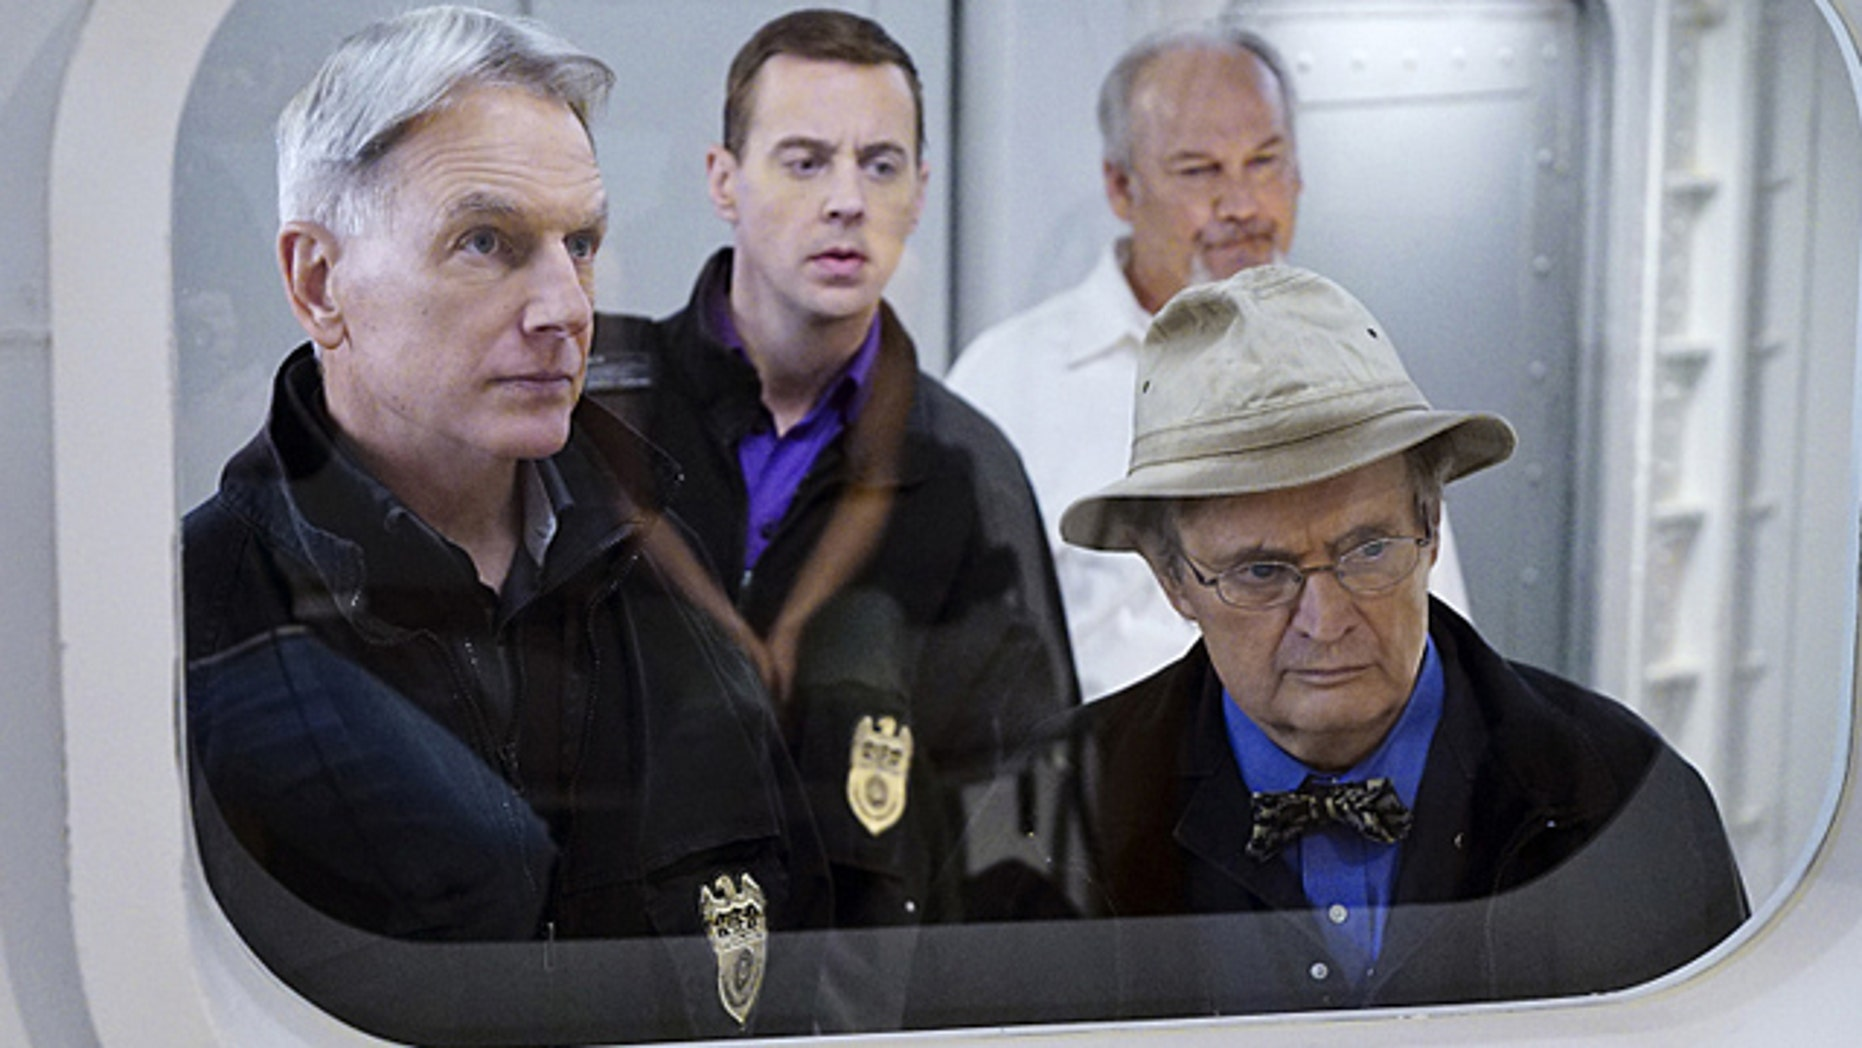 'Decompressed' -- When a deep sea diver is murdered on the job, his body and suspected co-workers must remain in a high-tech decompression chamber for four days, leaving the NCIS team to complete an unorthodox investigation from outside the tank. Pictured left to right: Mark Harmon, Sean Murray, Brett Rice and David McCallum (Sonja Flemming/CBS)